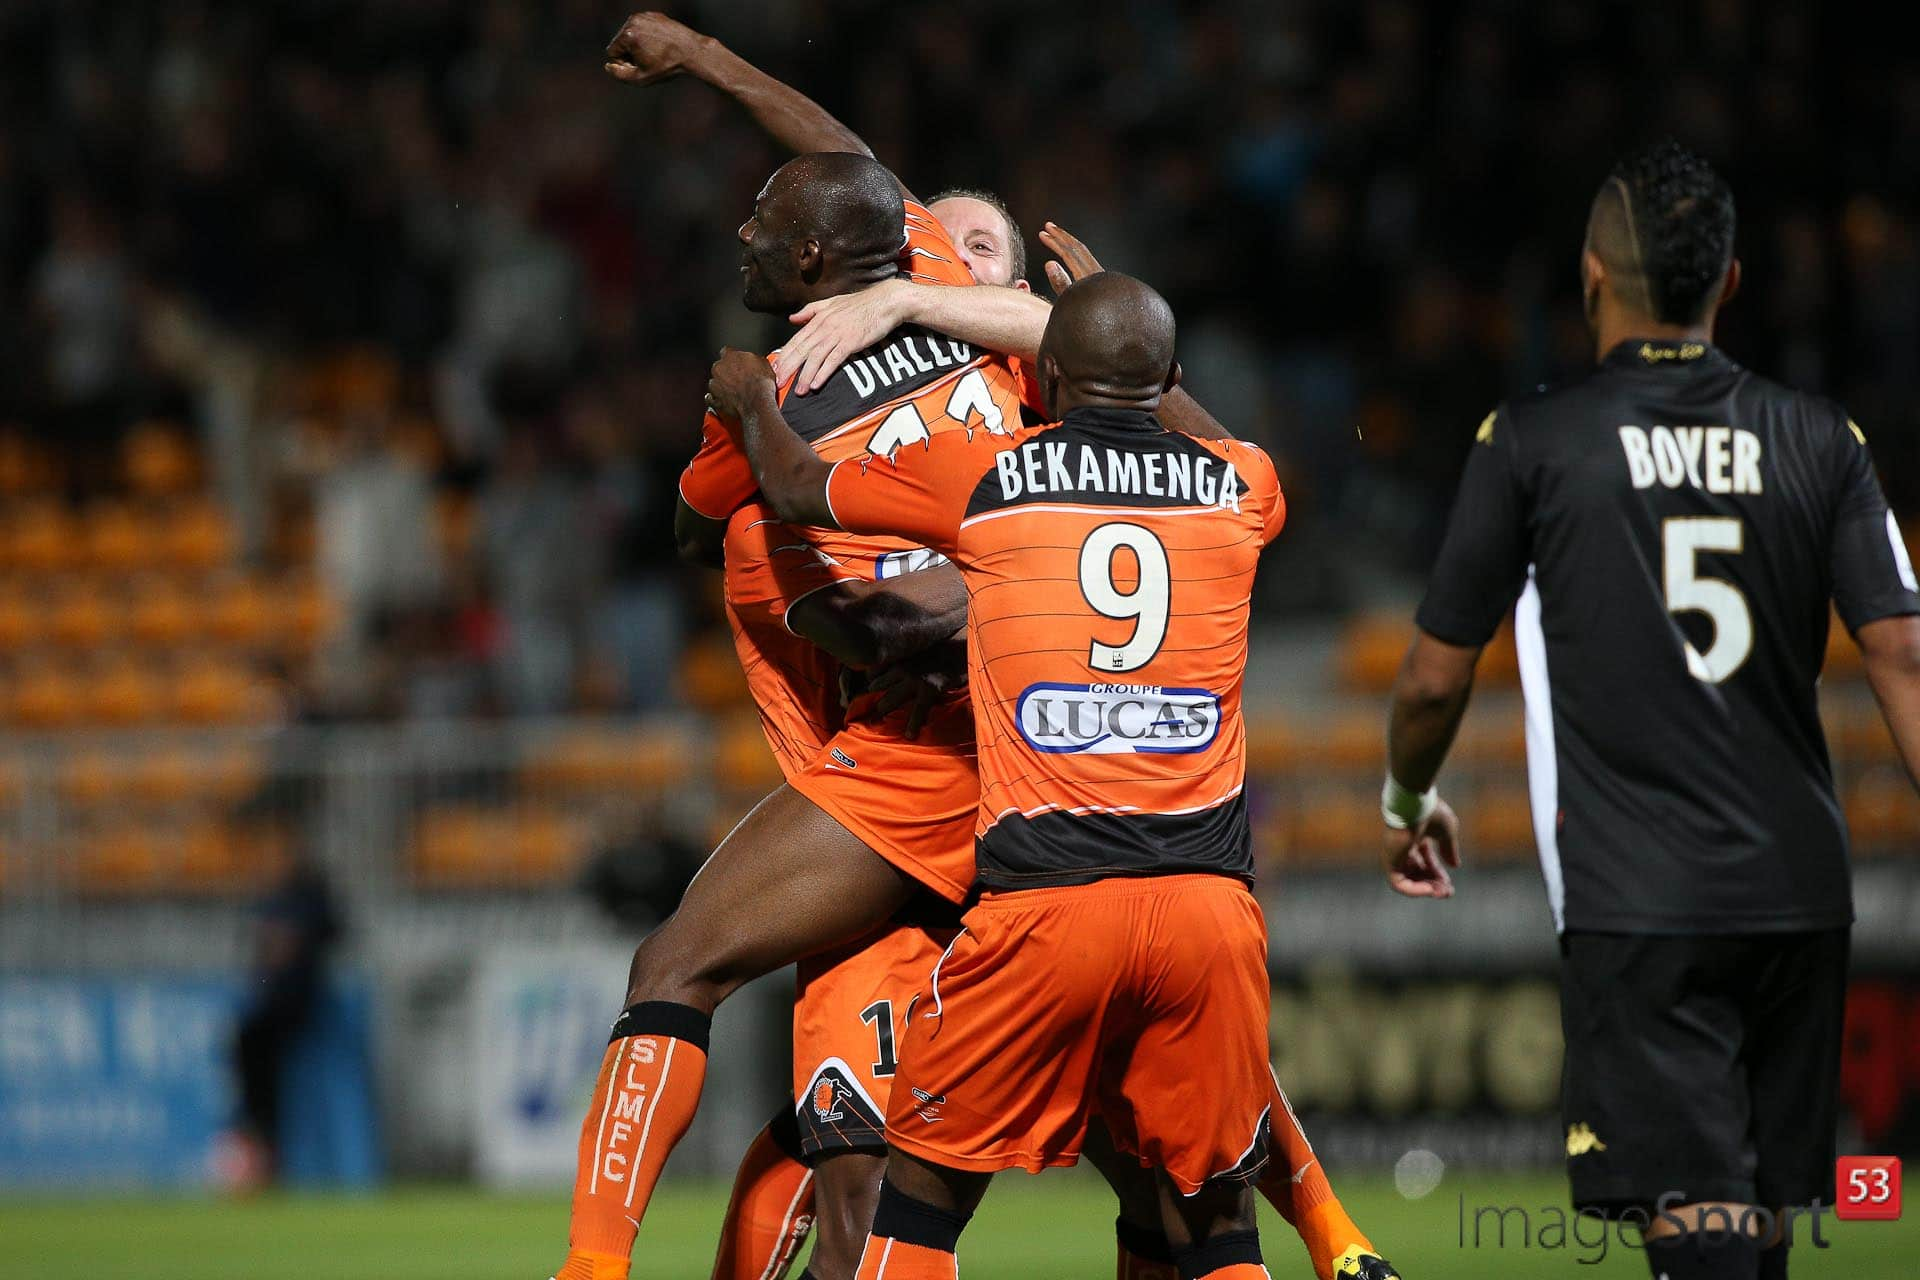 NG_1314_Ligue2_J06_Laval-Angers_5